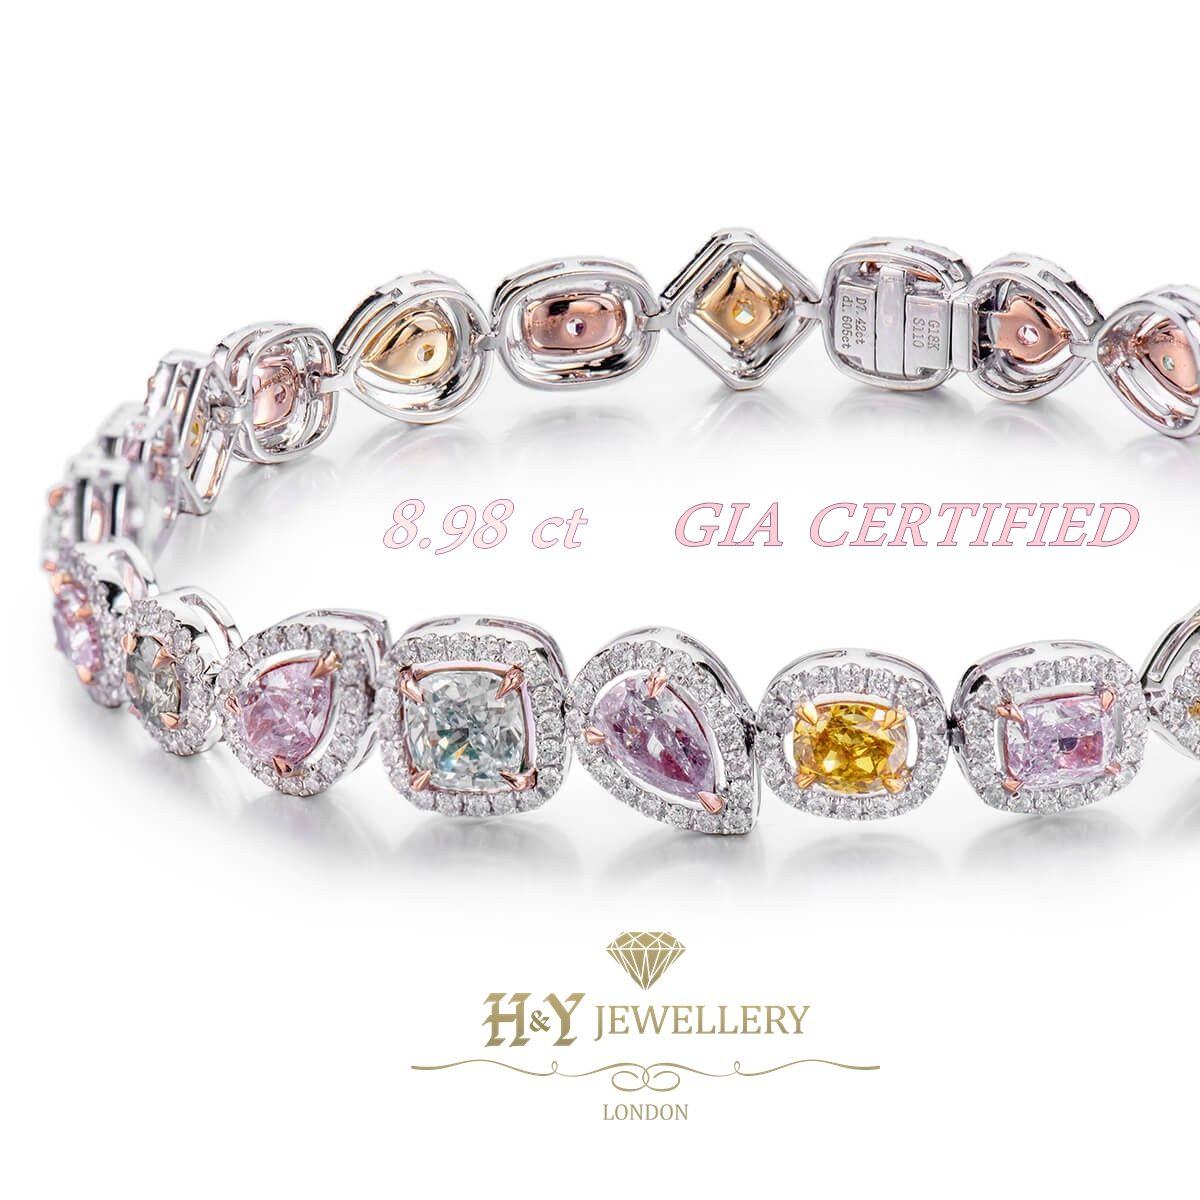 Multi Coloured Fancy Diamond Bracelet Perfect Gift For Her More Information